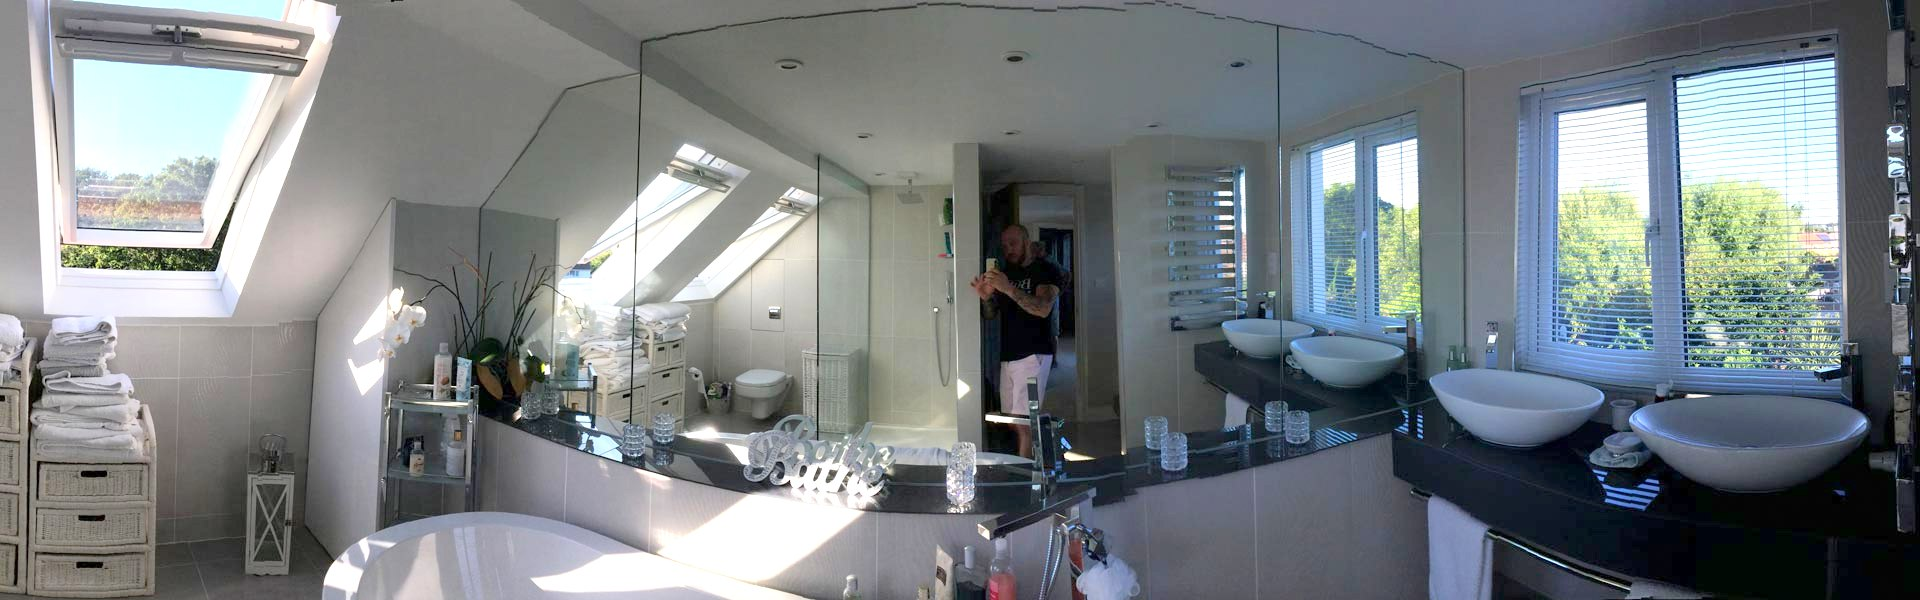 Loft Conversion with Bathroom by Apex Loft Conversions